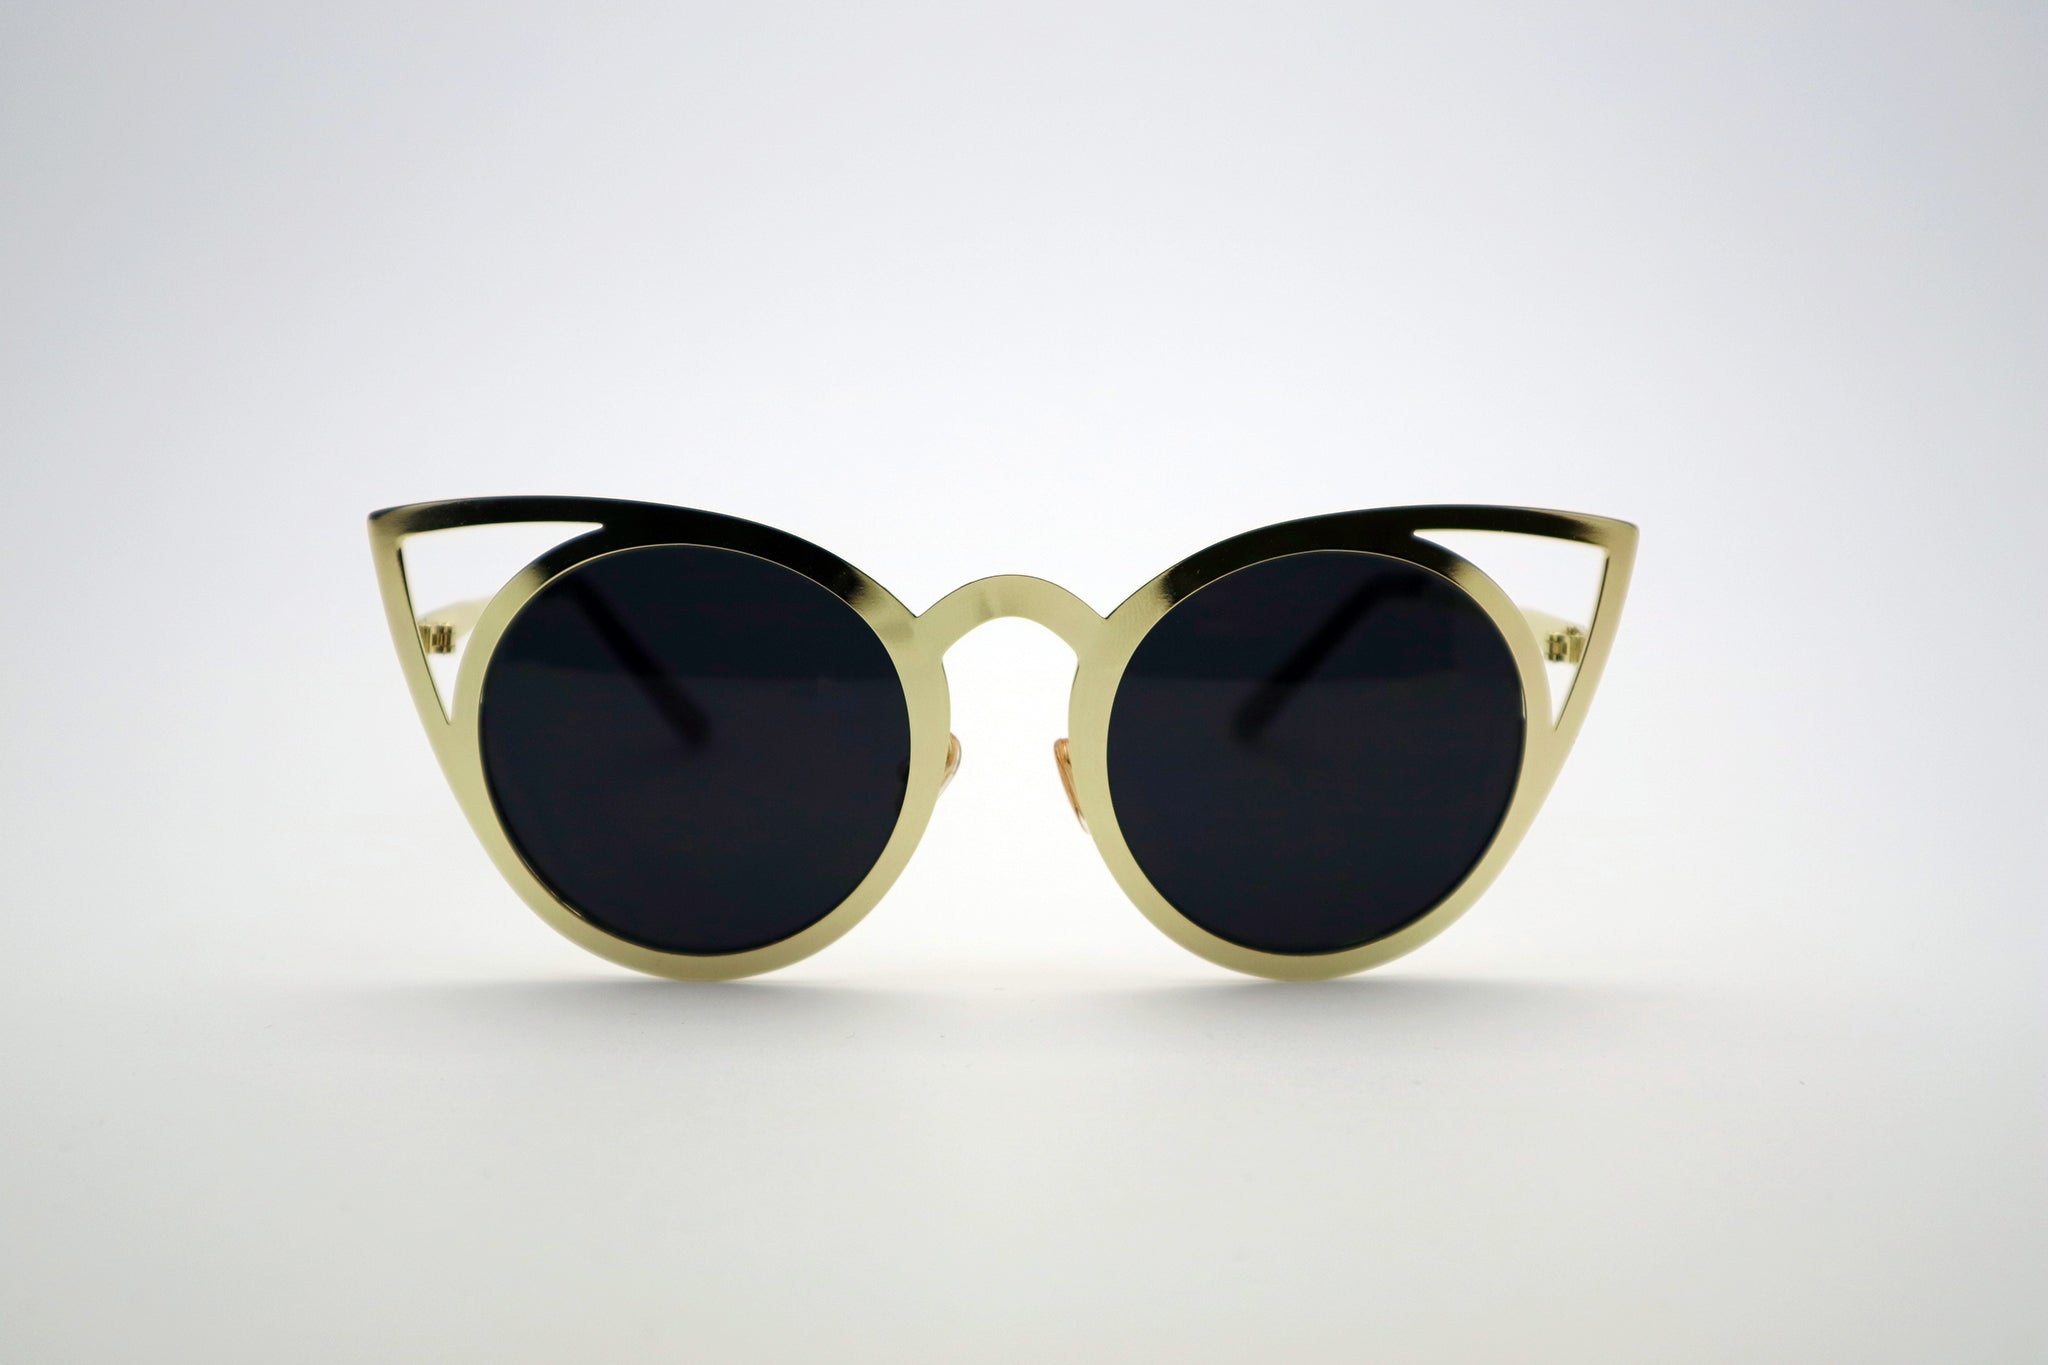 afc707390f75 Queens Love - Pussy Power Sunglasses - Gold Black - Queen The Label